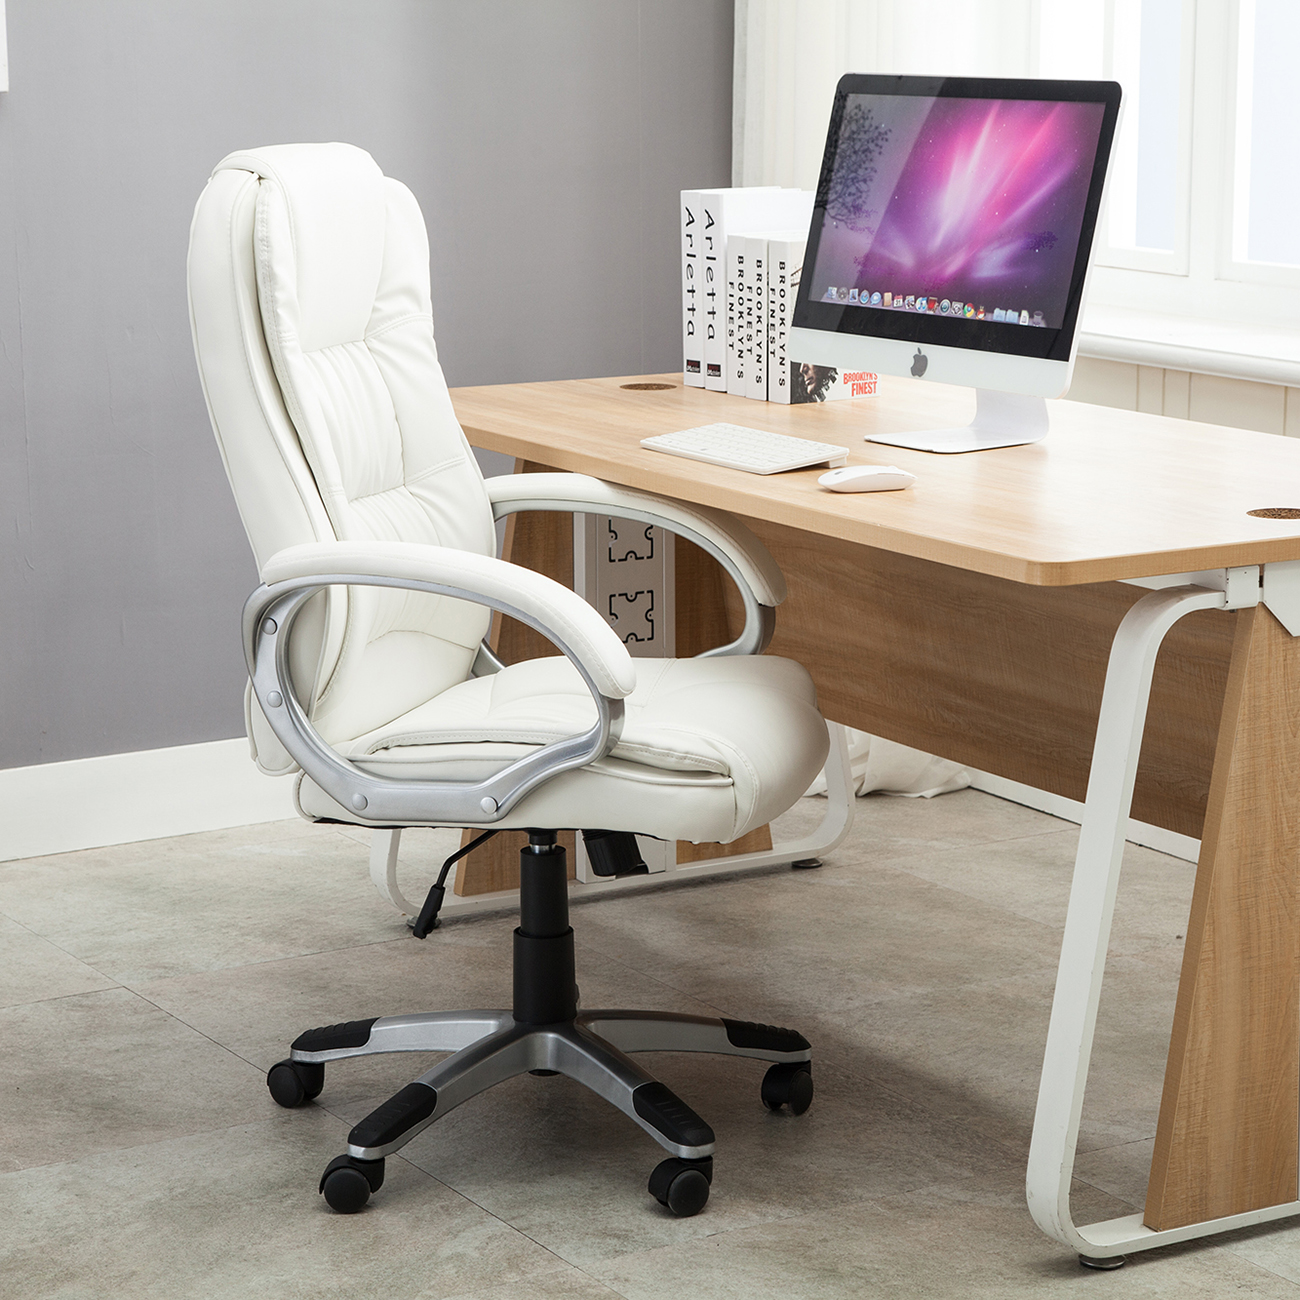 Comfortable Computer Chairs White Pu Leather High Back Office Chair Executive